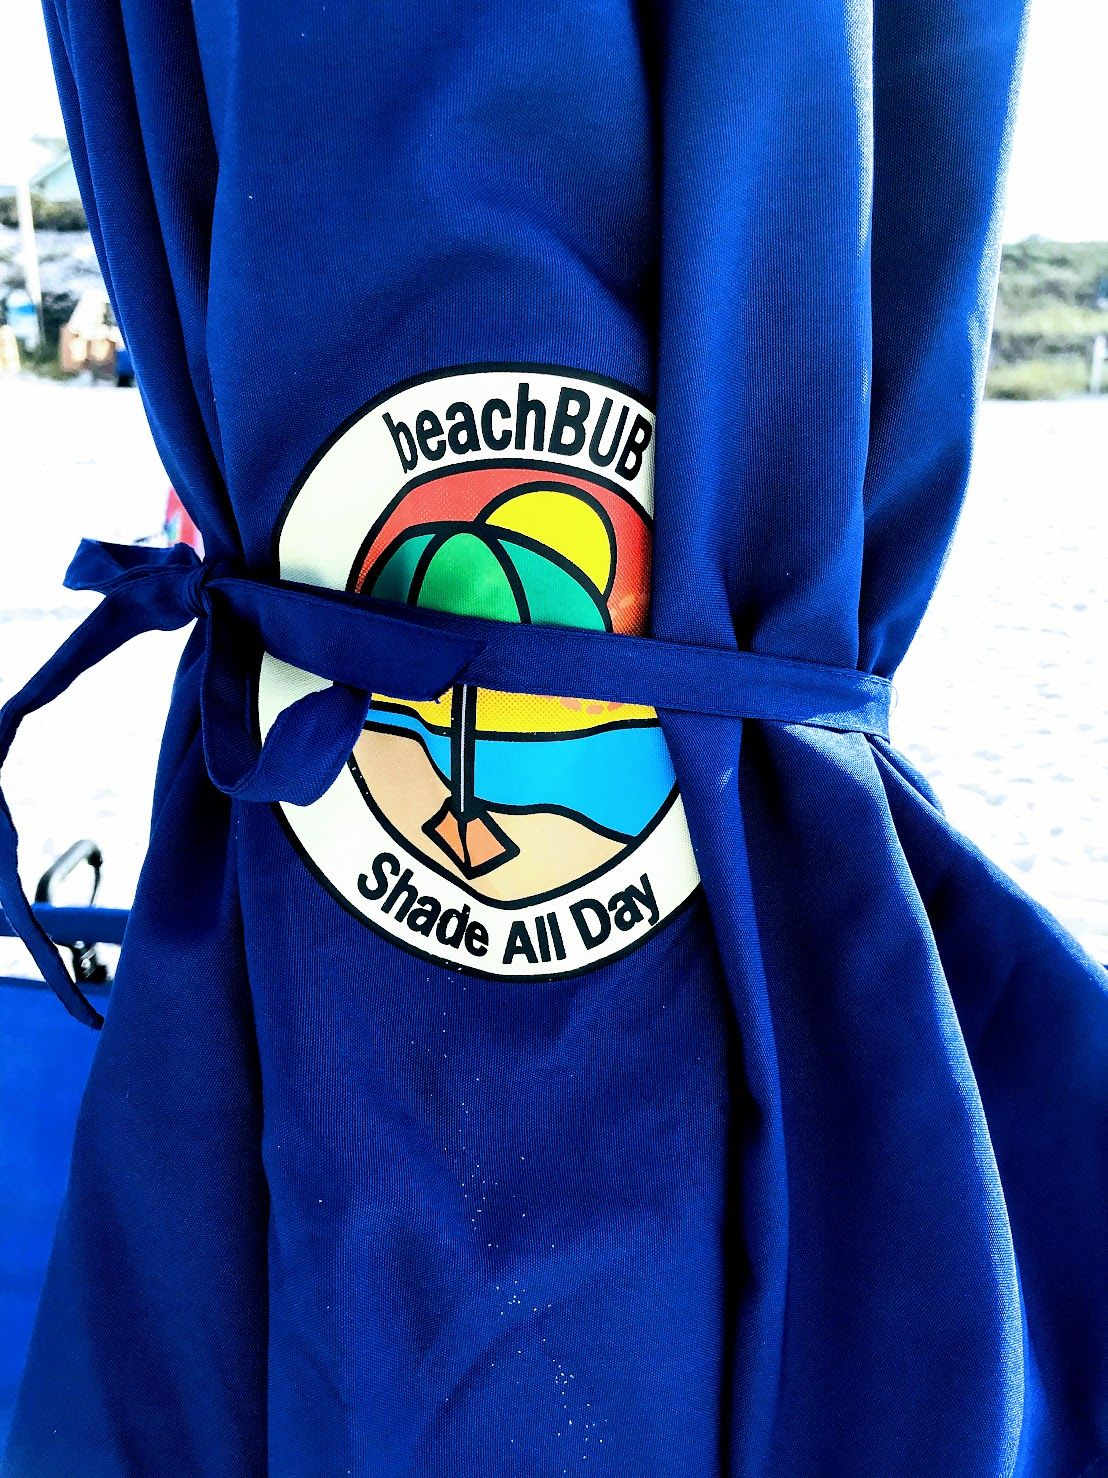 Pin on Beach Sun Shade with Umbrellas, Tents and Canopies